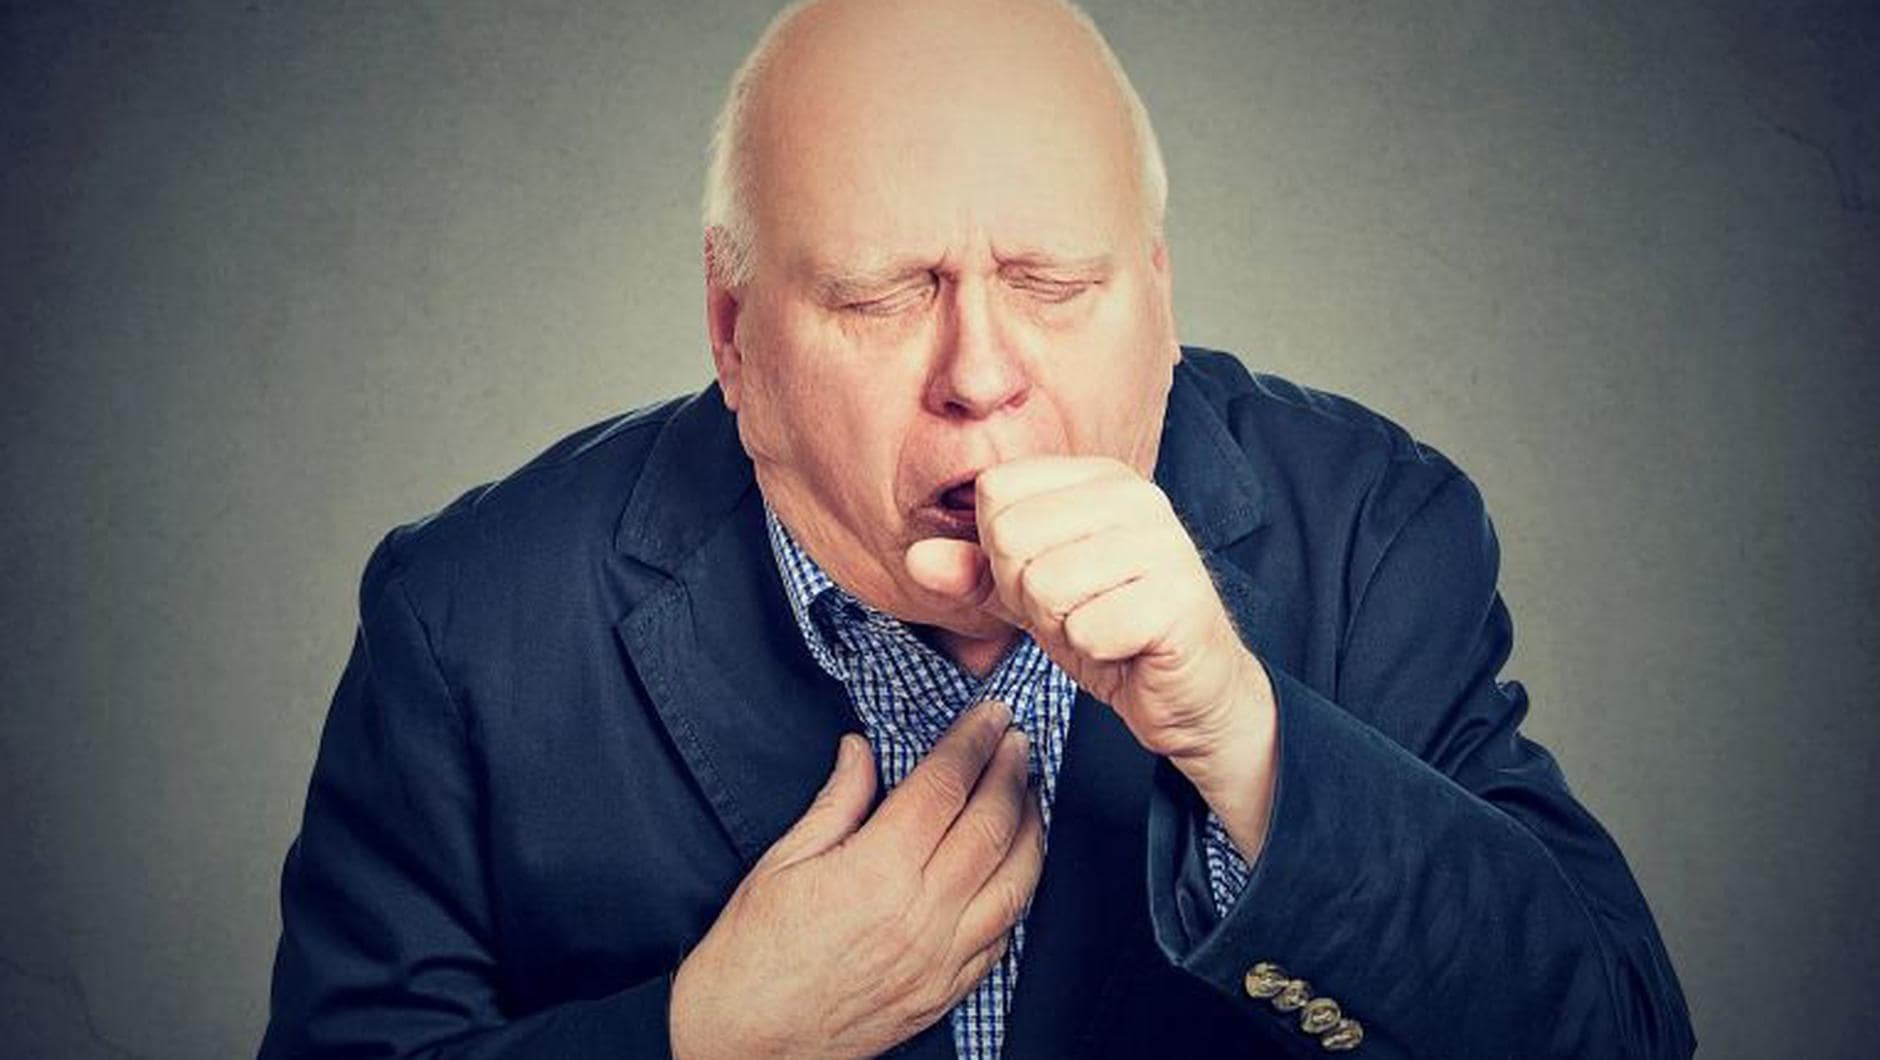 Image of coughing man. Hyfe - Cough is now objective, reliable clinical data